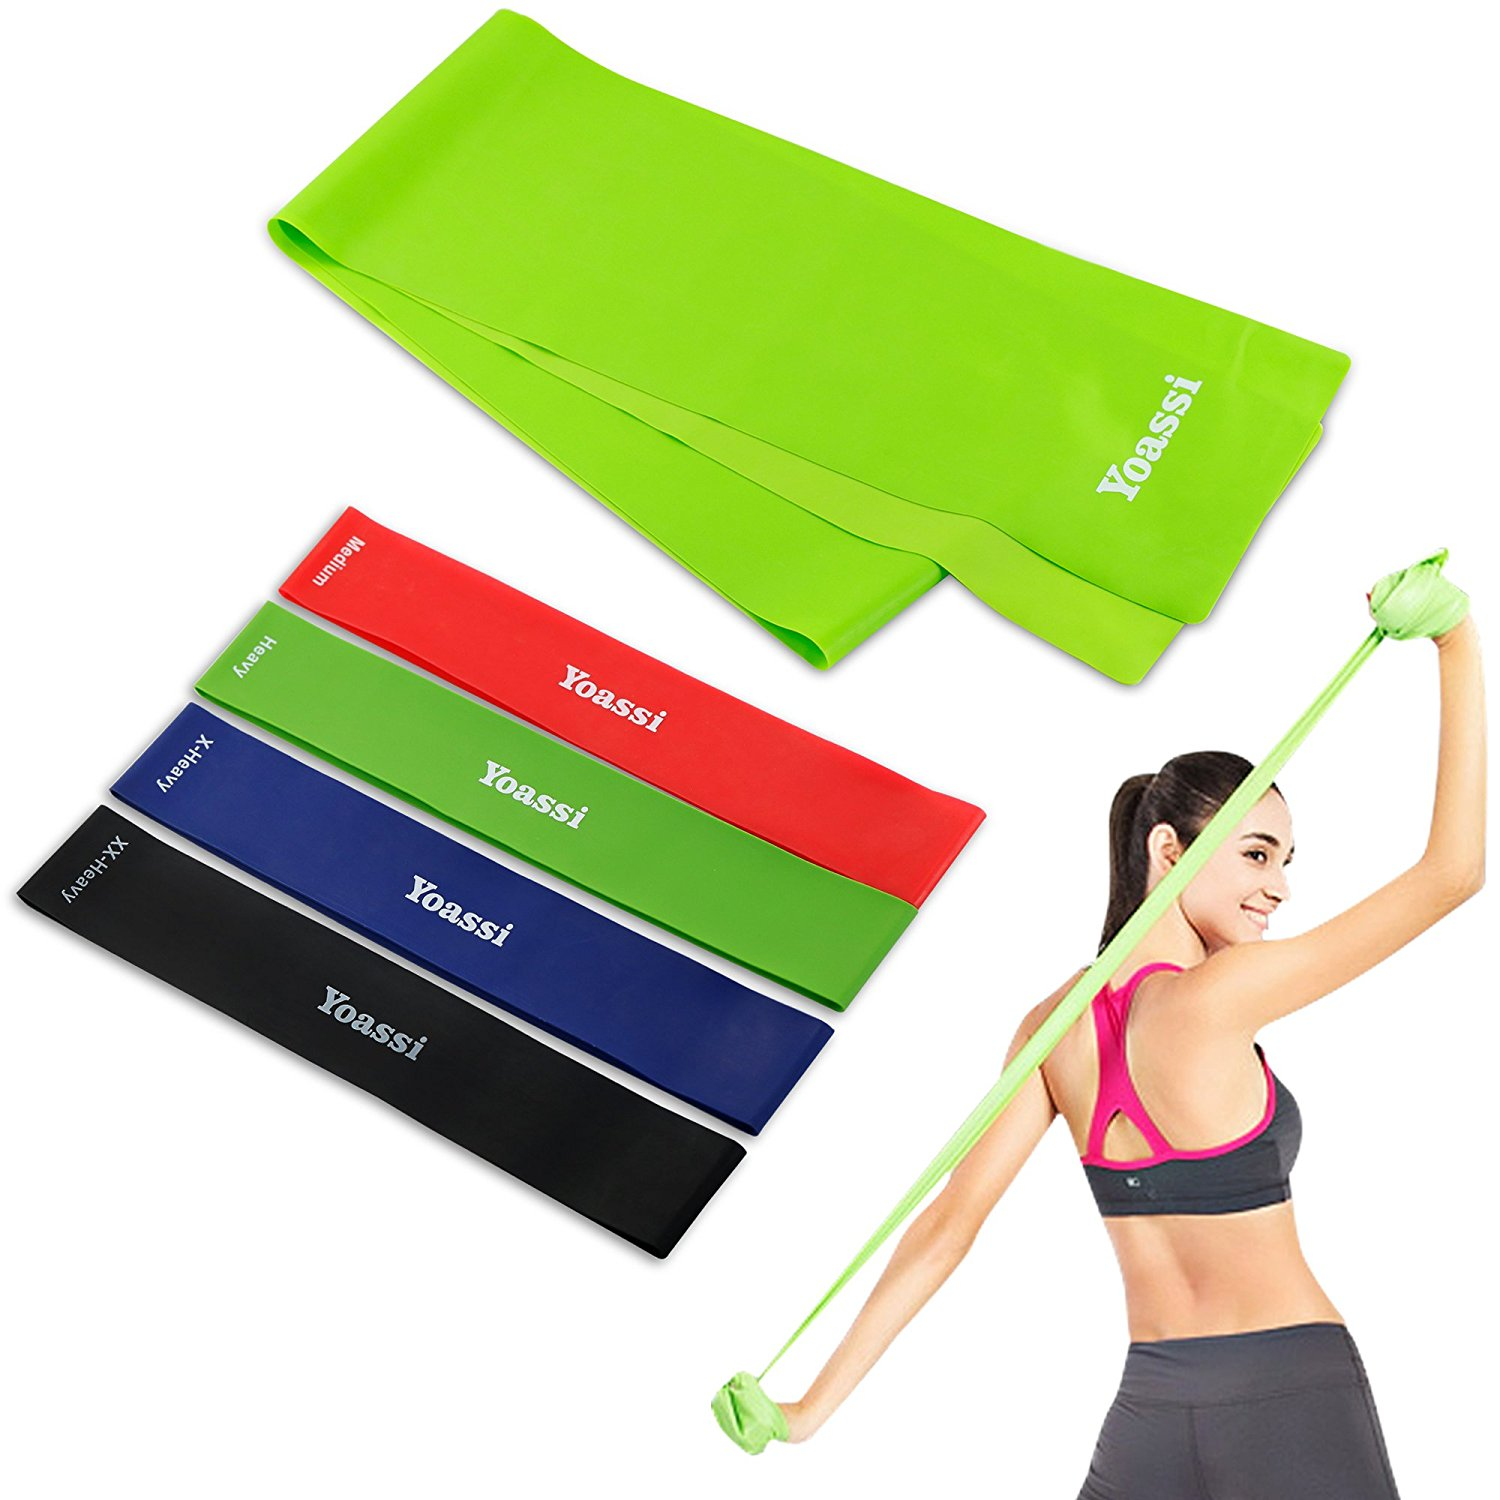 Yoassi Set of 5 Resistance Bands, Exercises Loop Resistant Stretch Bands for Workout, Stretching Training, Home Fitness, Core Strength, Yoga, Balance, Gym, Legs Butt Arms